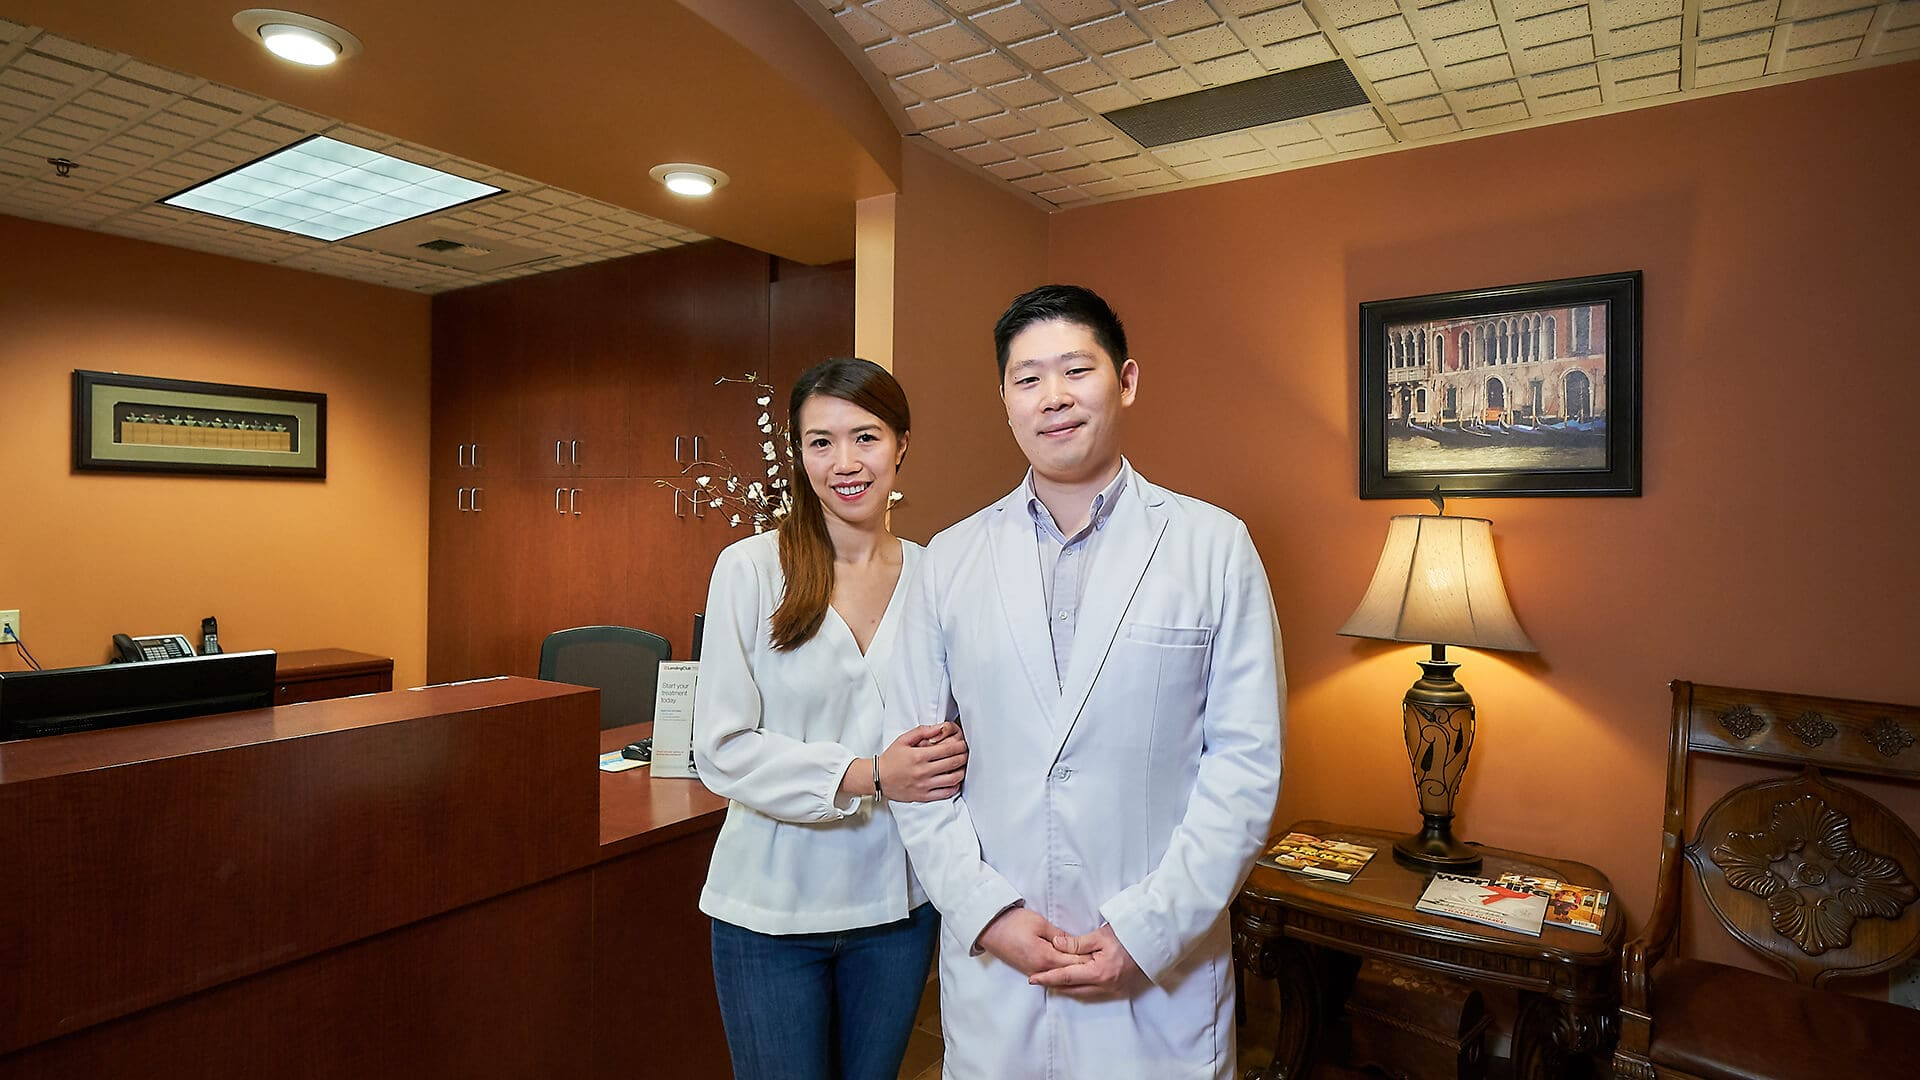 Dr. Hu with his wife inside the dental office hugging each other